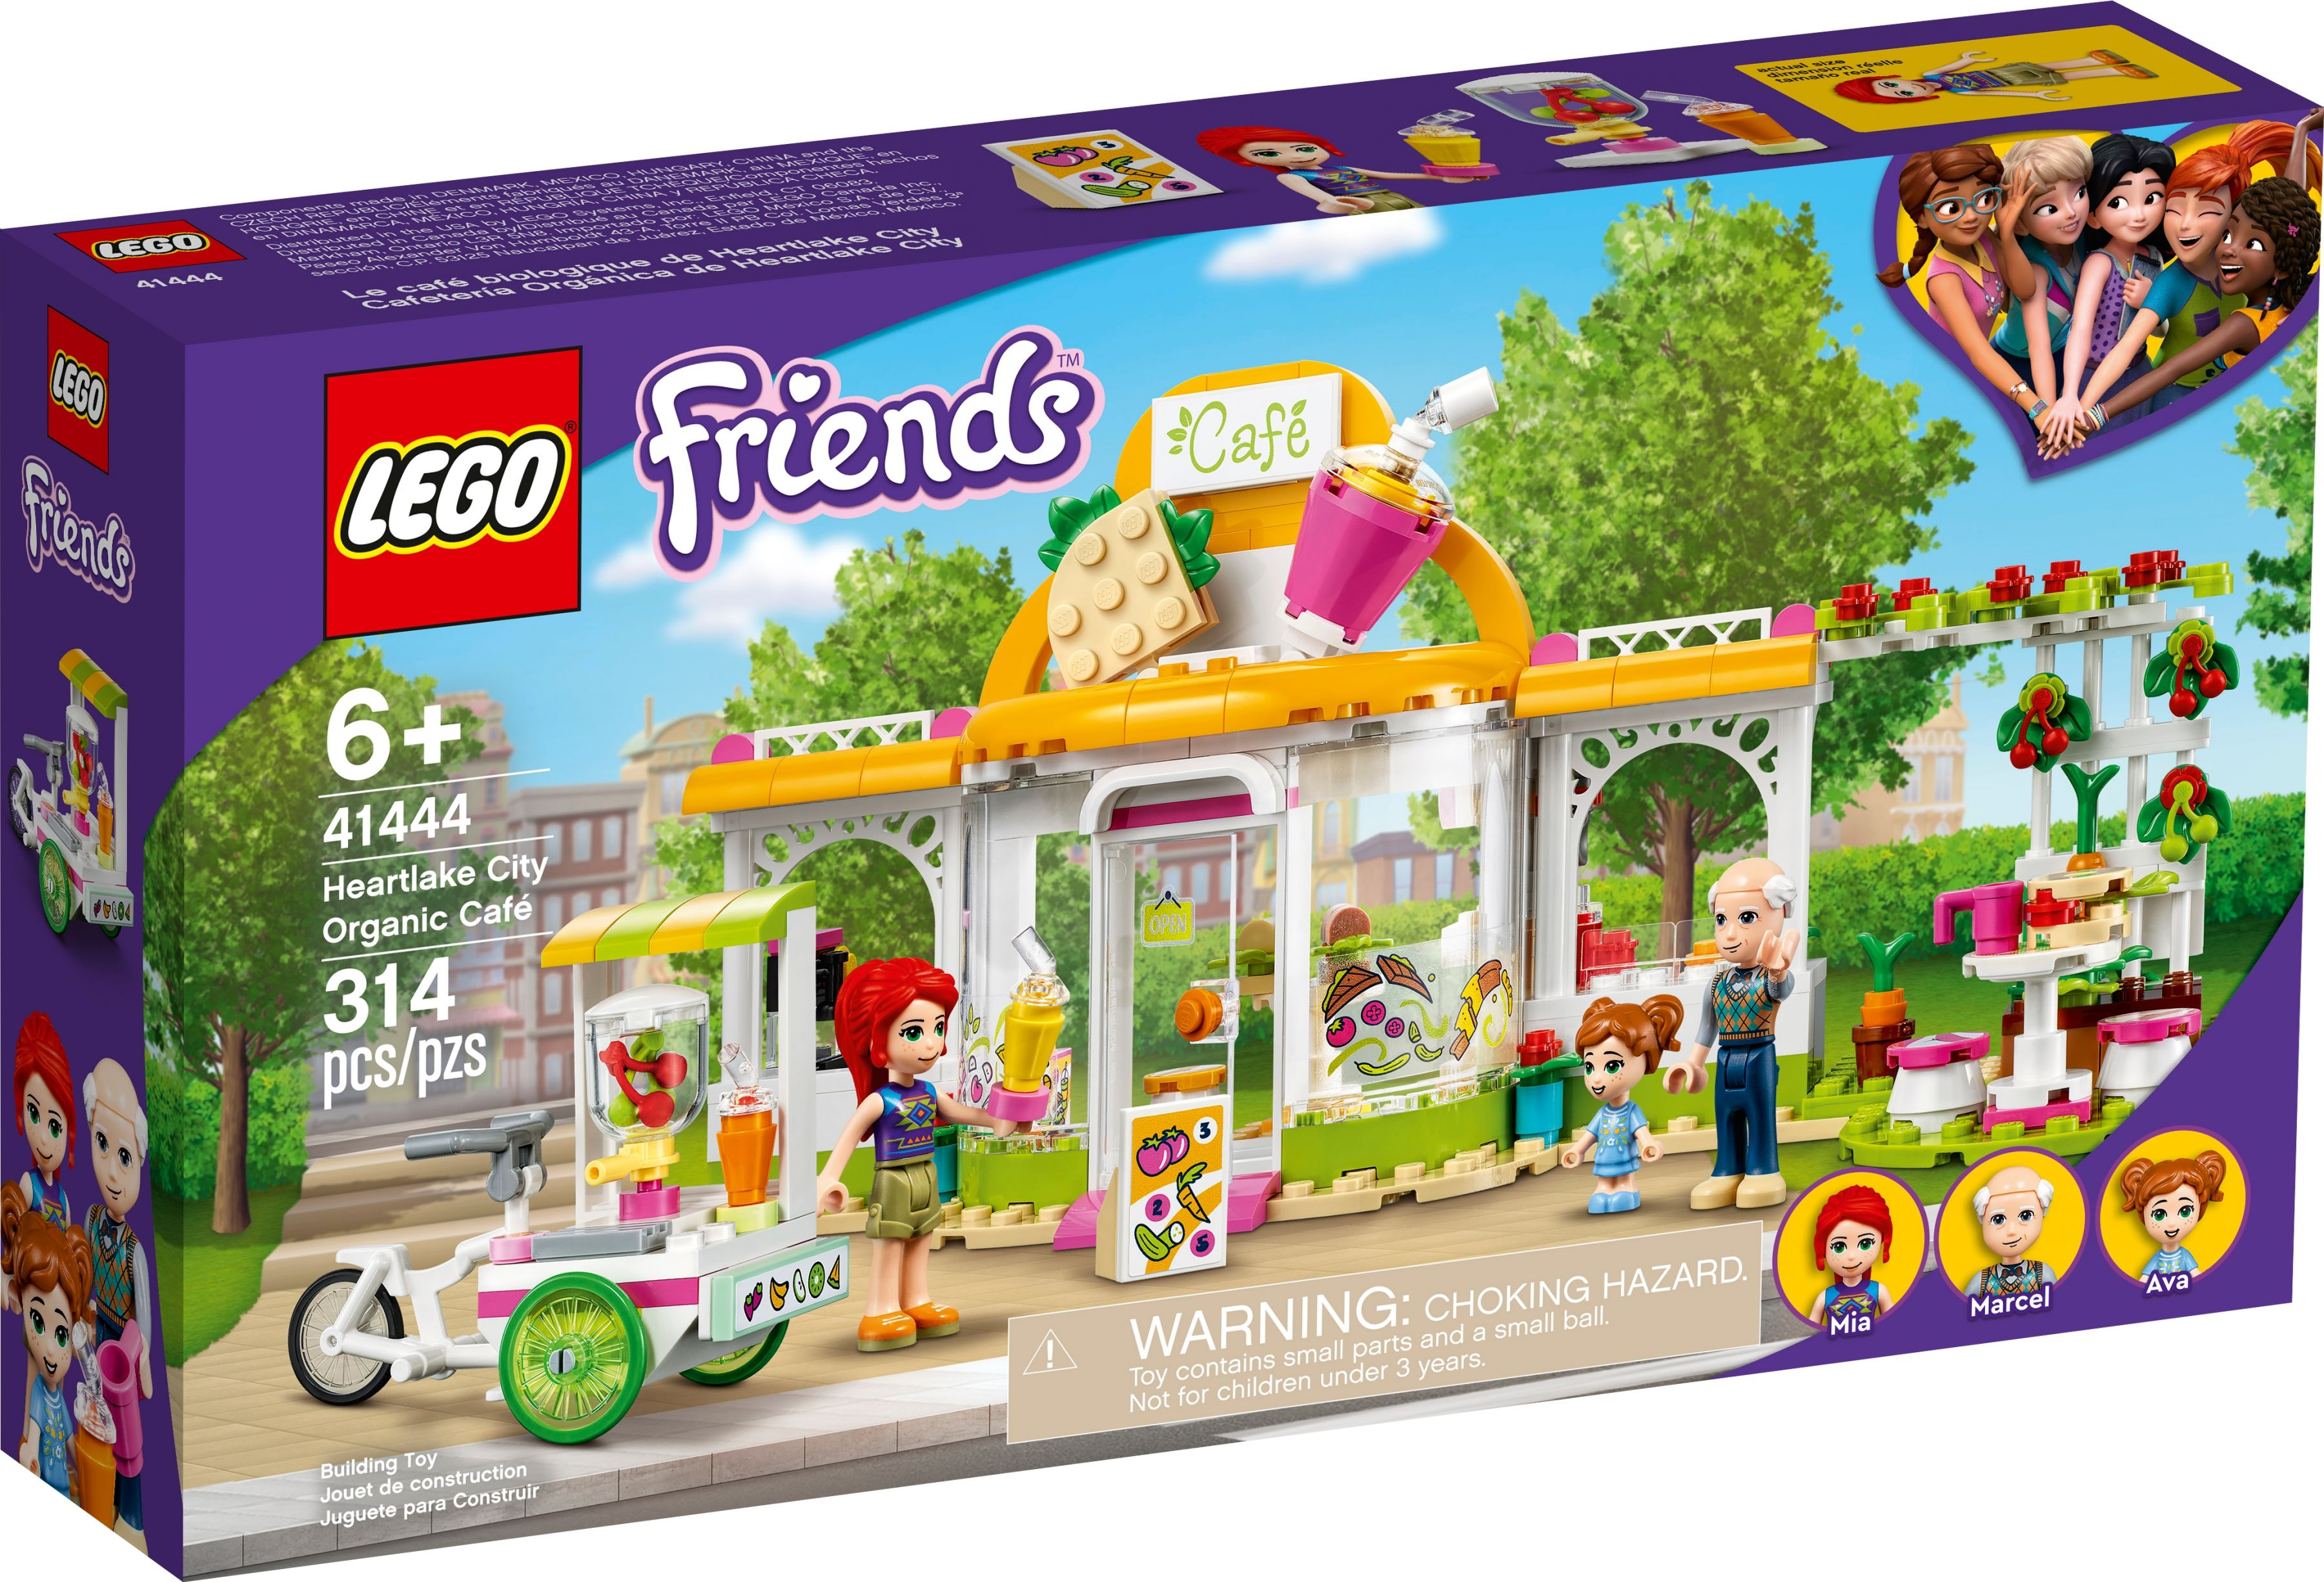 LEGO Friends 41444 Heartlake City Bio-Café LEGO_41444_alt1.jpg